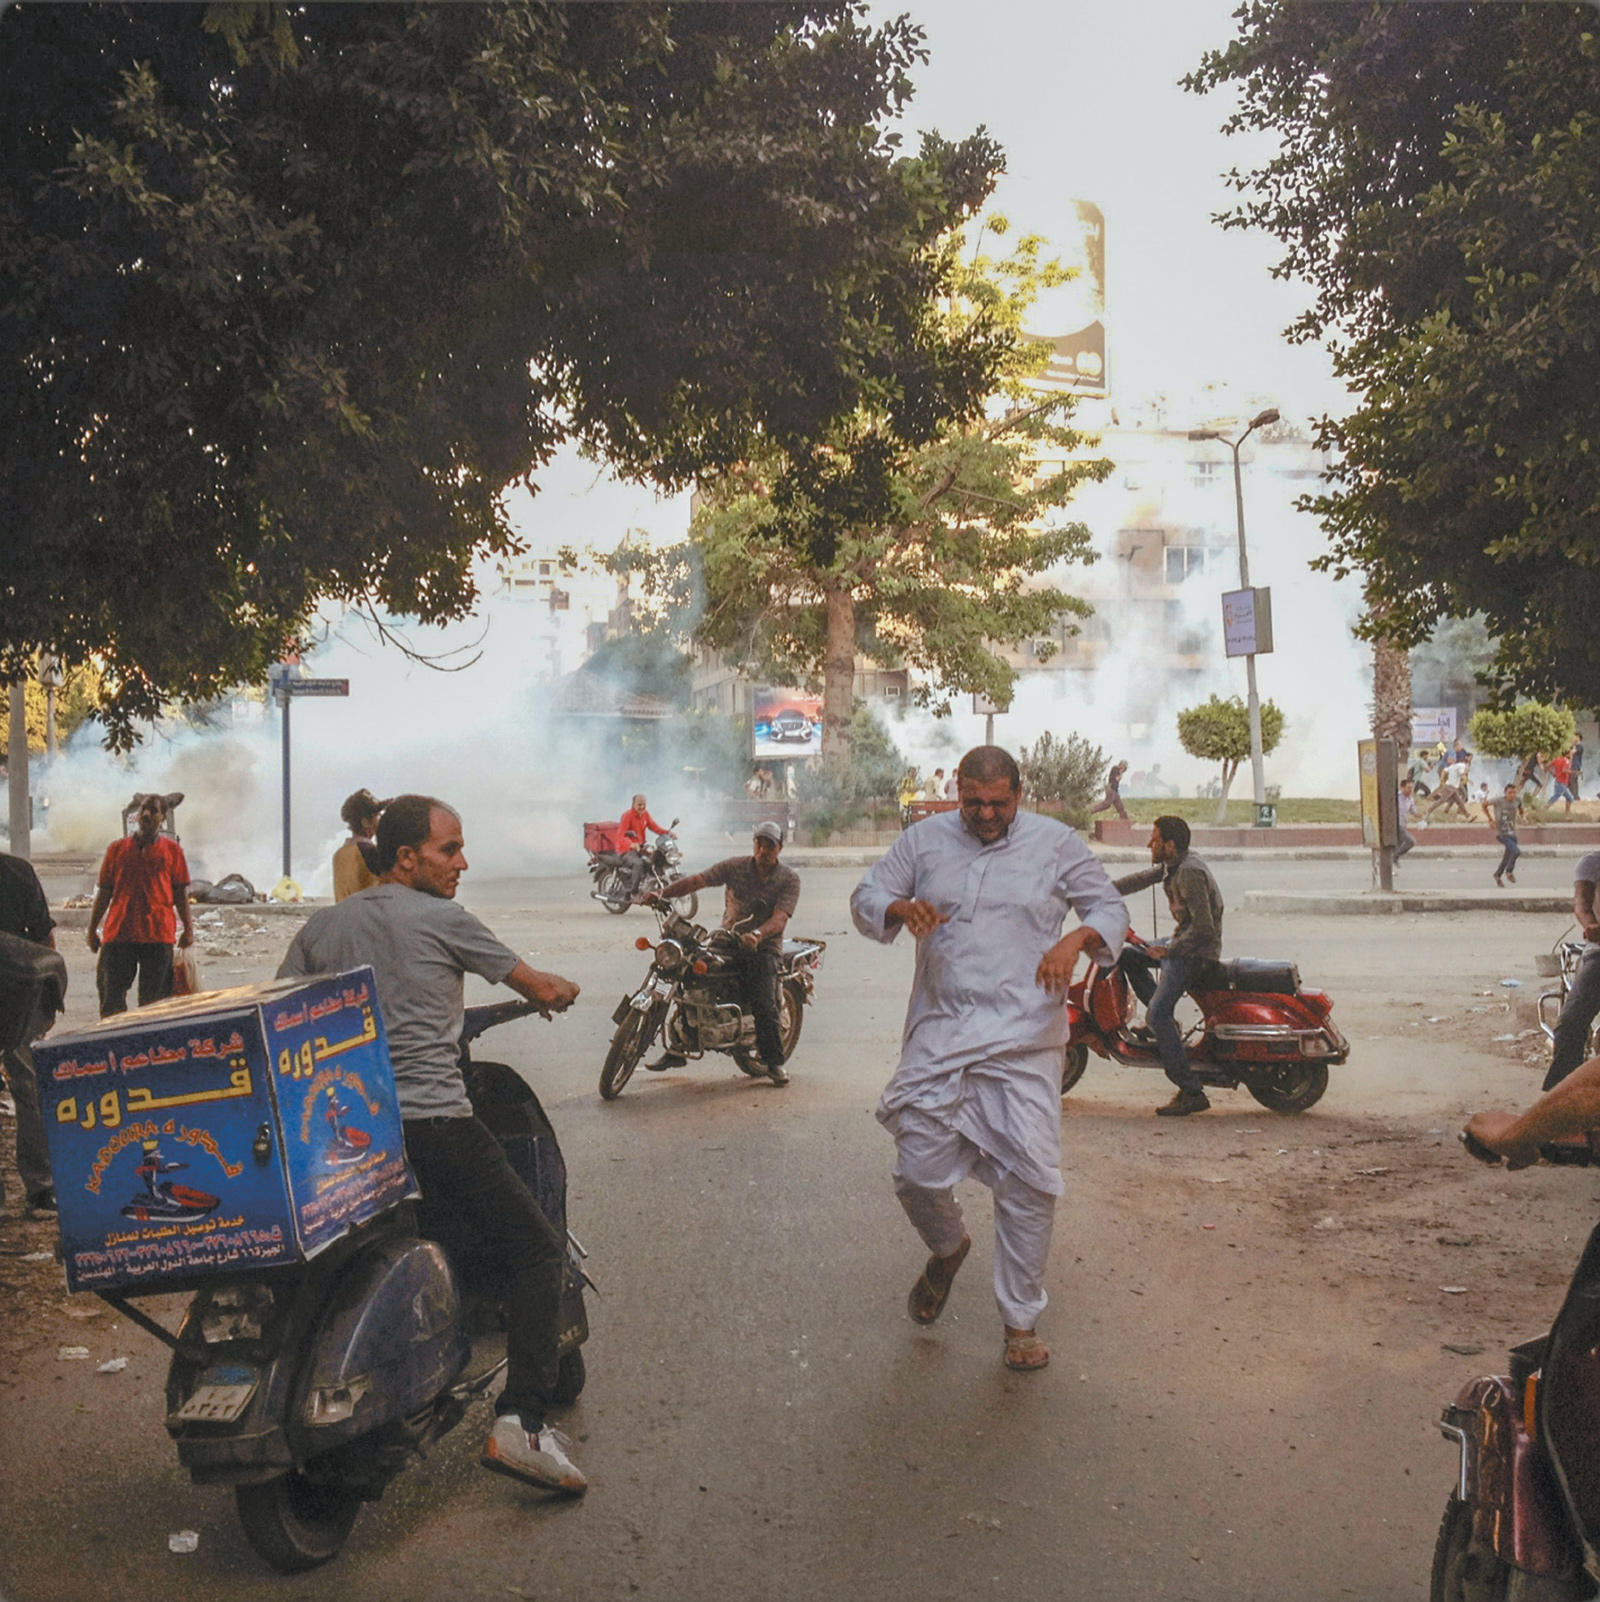 Police officers throwing tear gas at participants in a rally for the Muslim Brotherhood, Cairo, August 2013